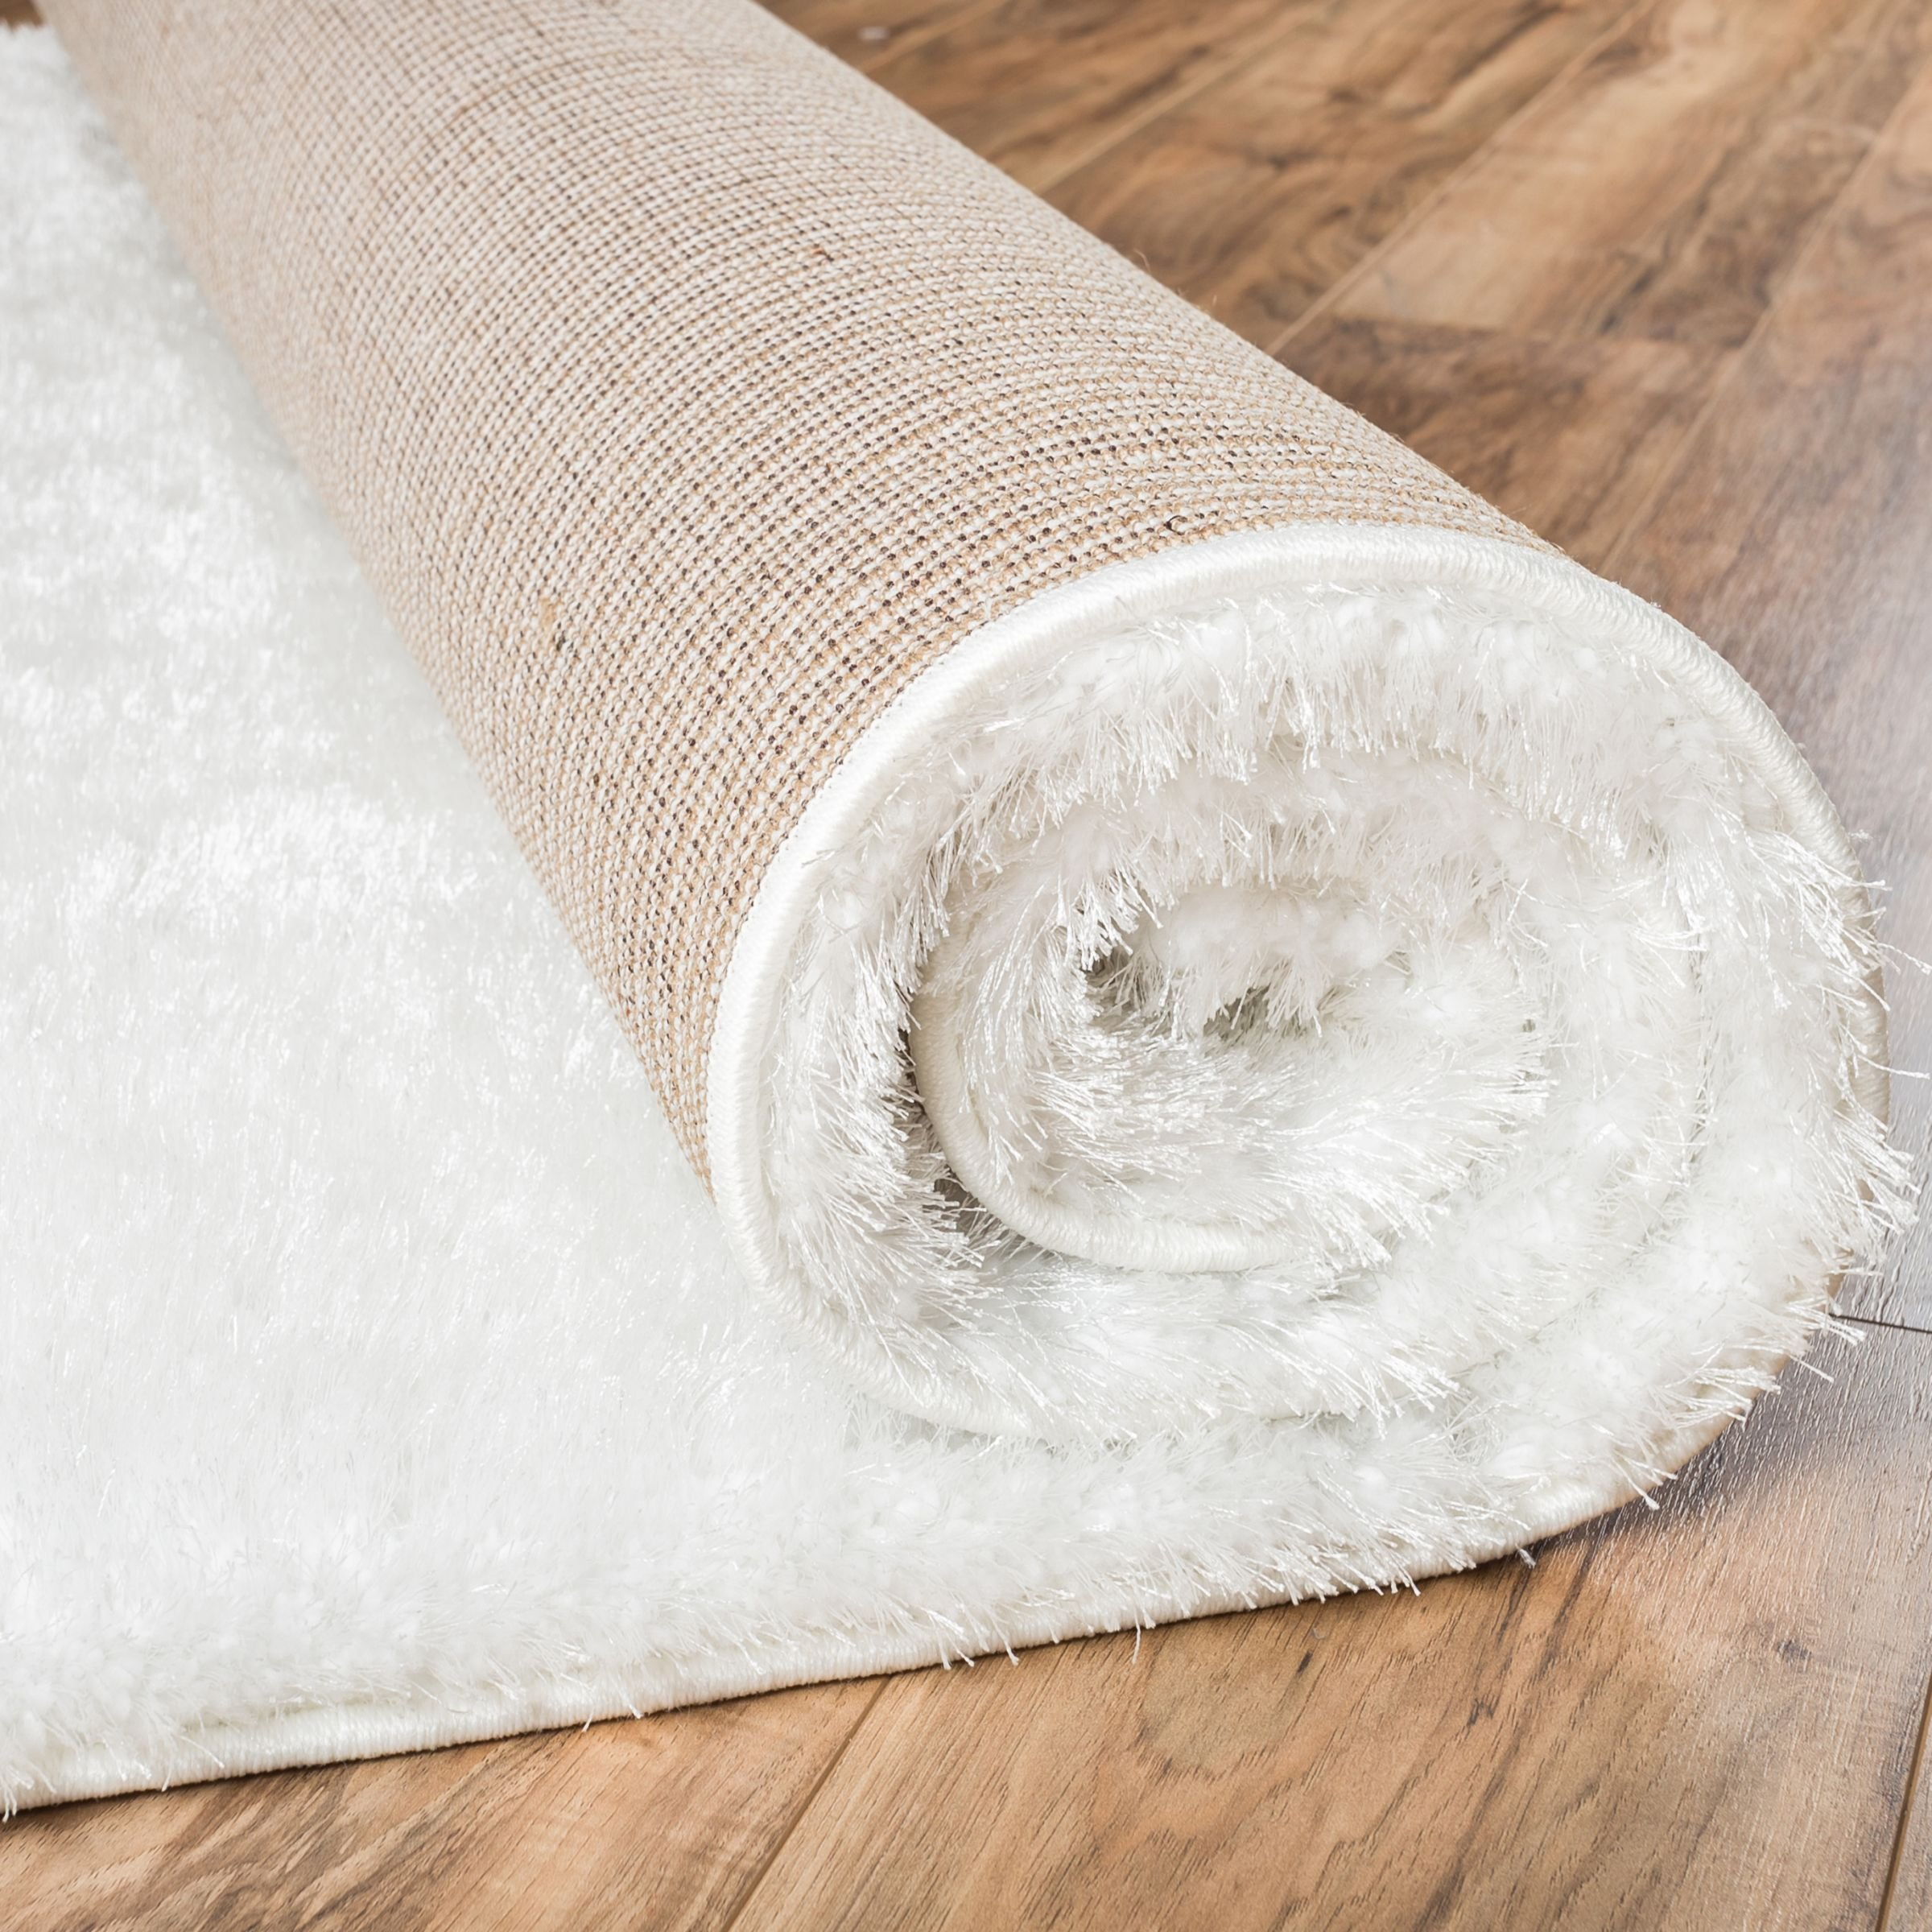 Shimmer Shag Snow White Solid Plain Modern Luster Ultra Thick Soft Plush Area Rug 7 x 10 ( 6'7'' x 9'10'' ) Contemporary Retro Polyester Textured 2'' Pile Yarn Easy Clean Stain Fade Resistant by Well Woven (Image #4)